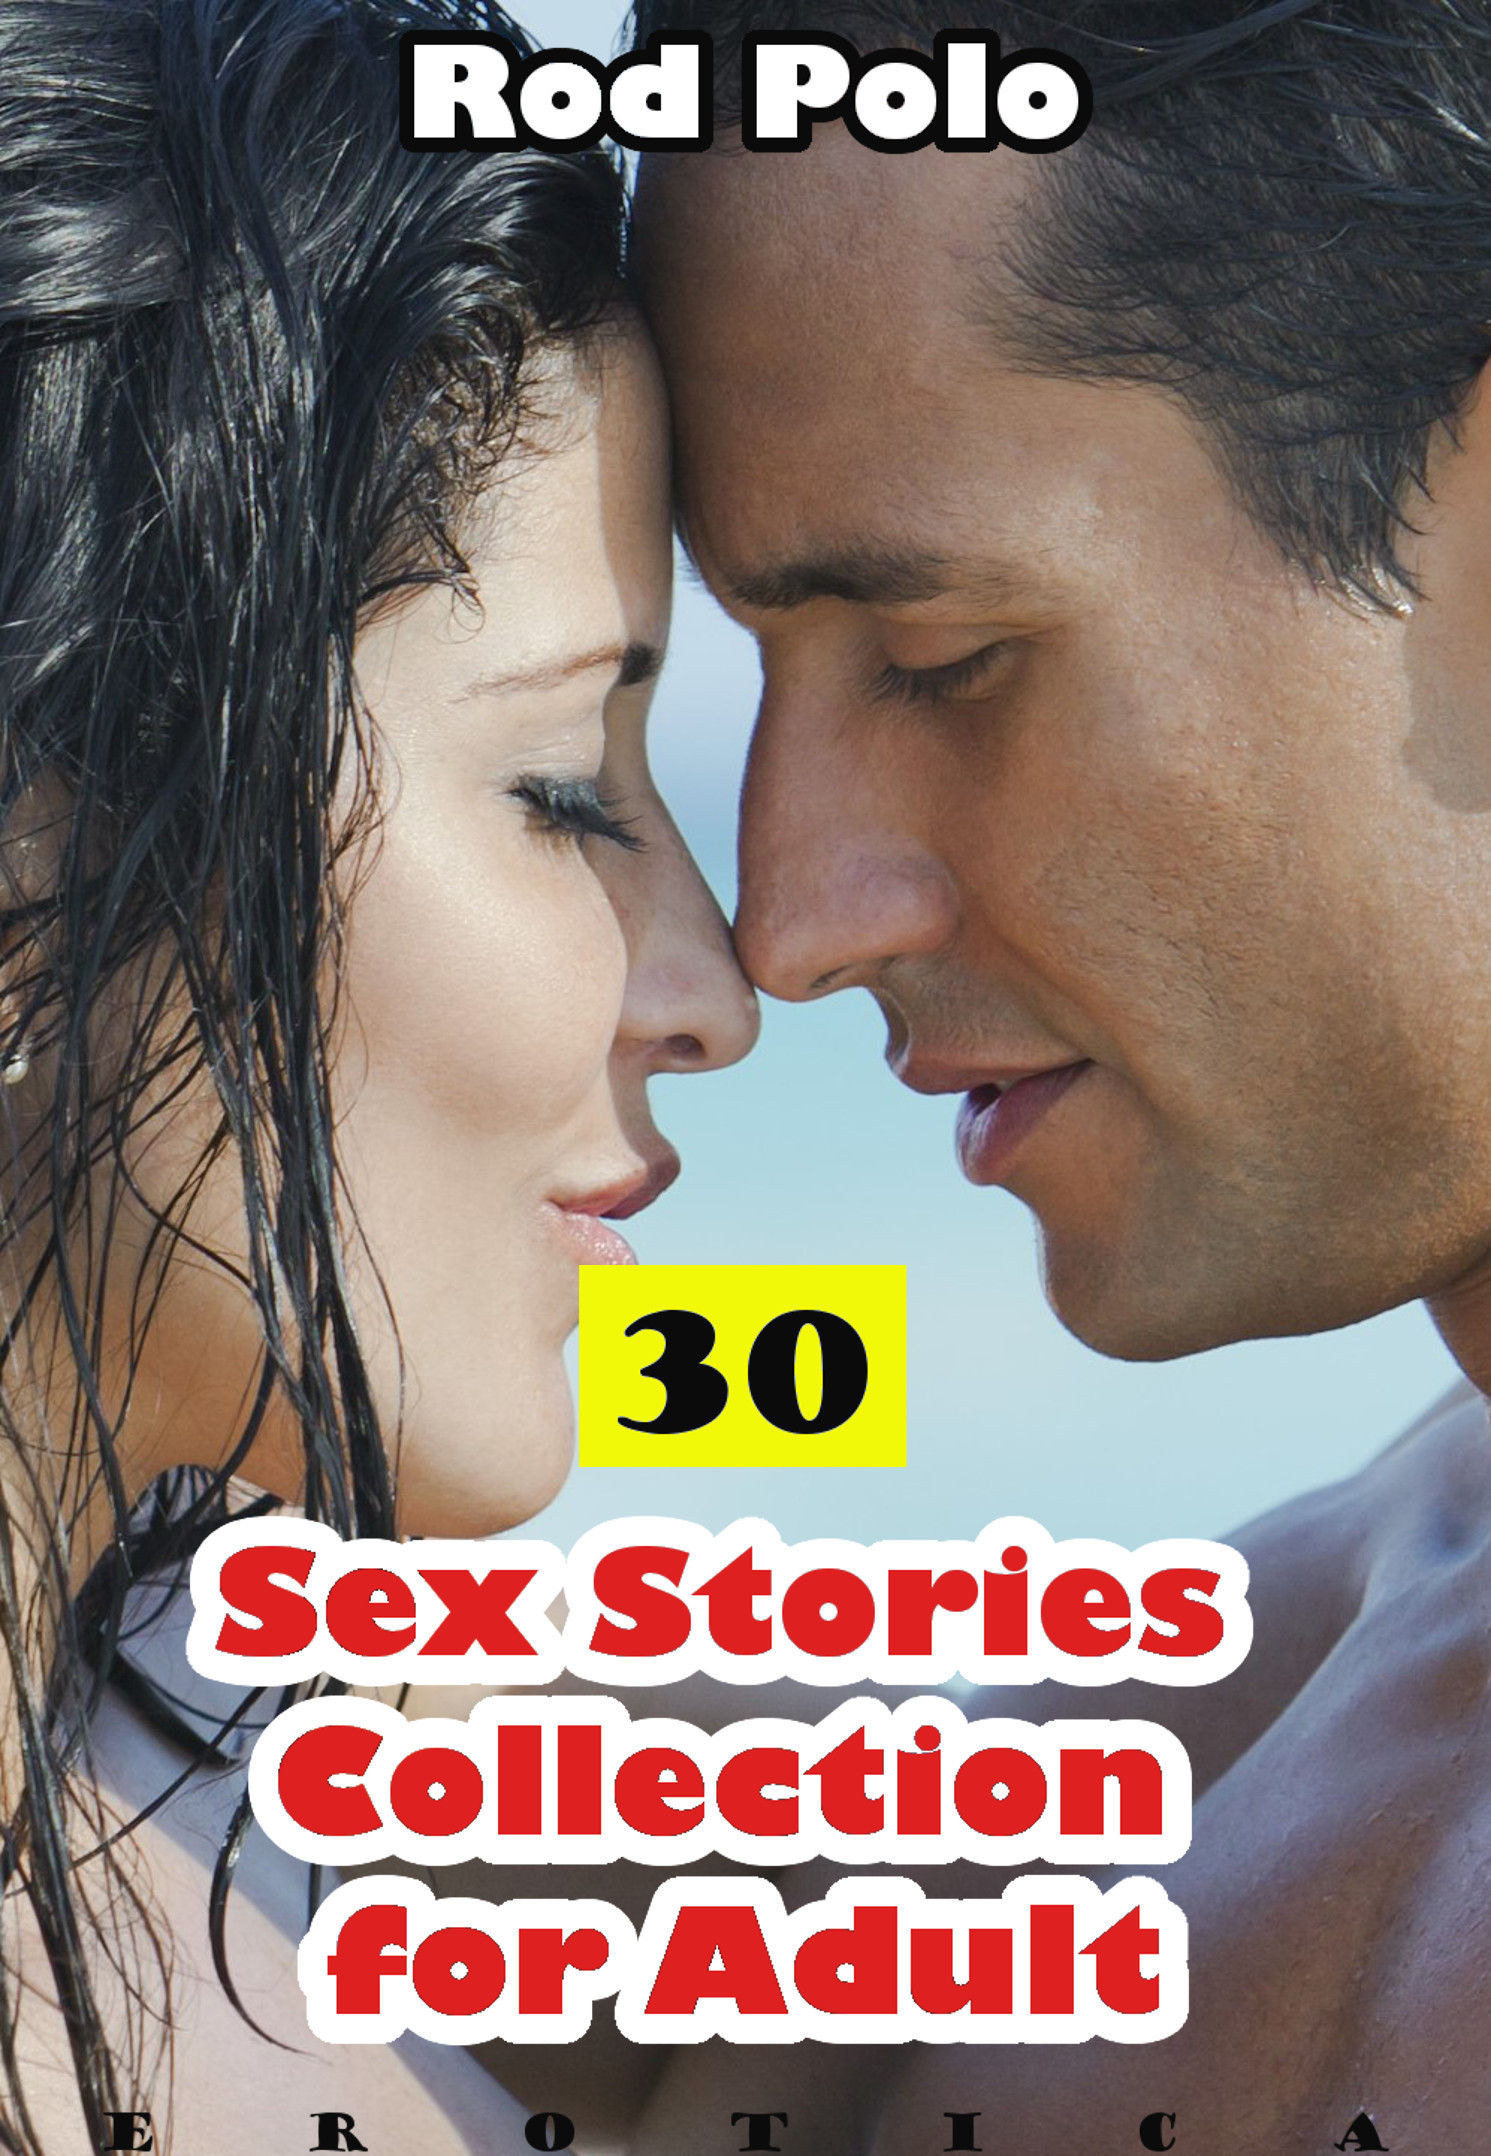 Erotica: 30 Sex Stories Collection for Adult  by  Rod Polo